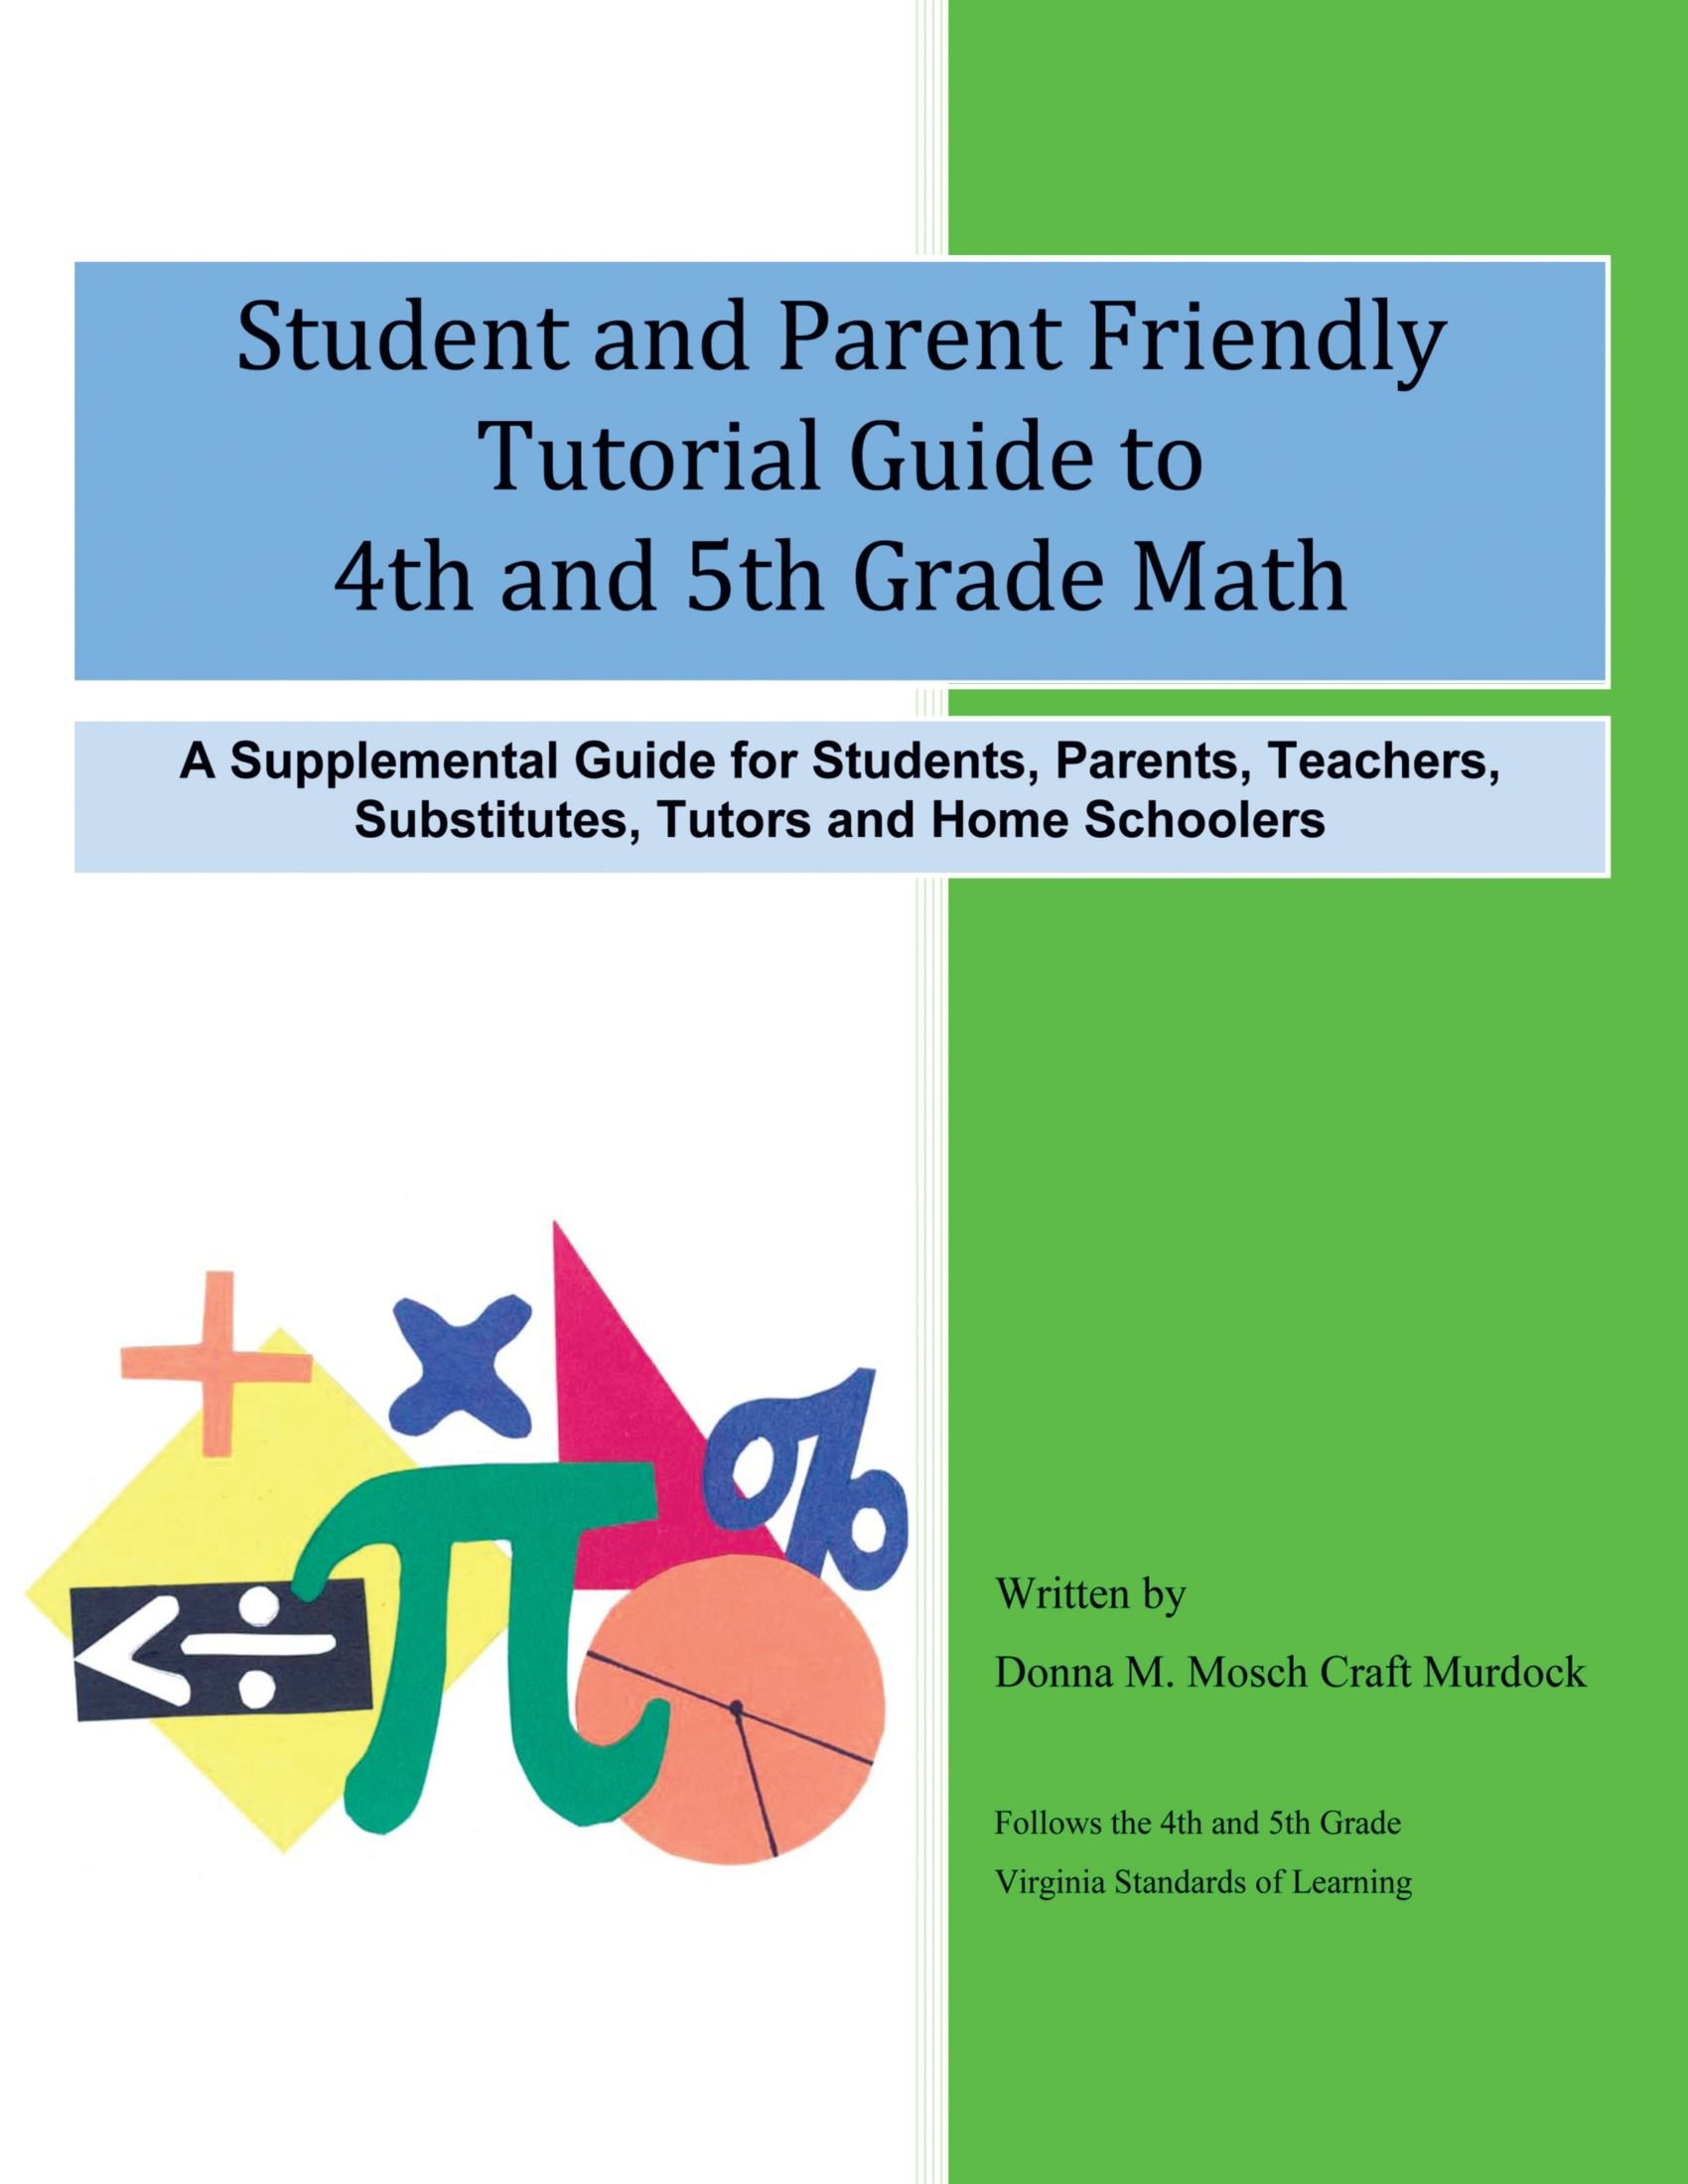 Student and Parent Friendly Tutorial Guide to 4th and 5th Grade Math: A Supplemental Guide for Students, Parents, Teachers, Substitutes, Tutors and Home Schoolers ebook